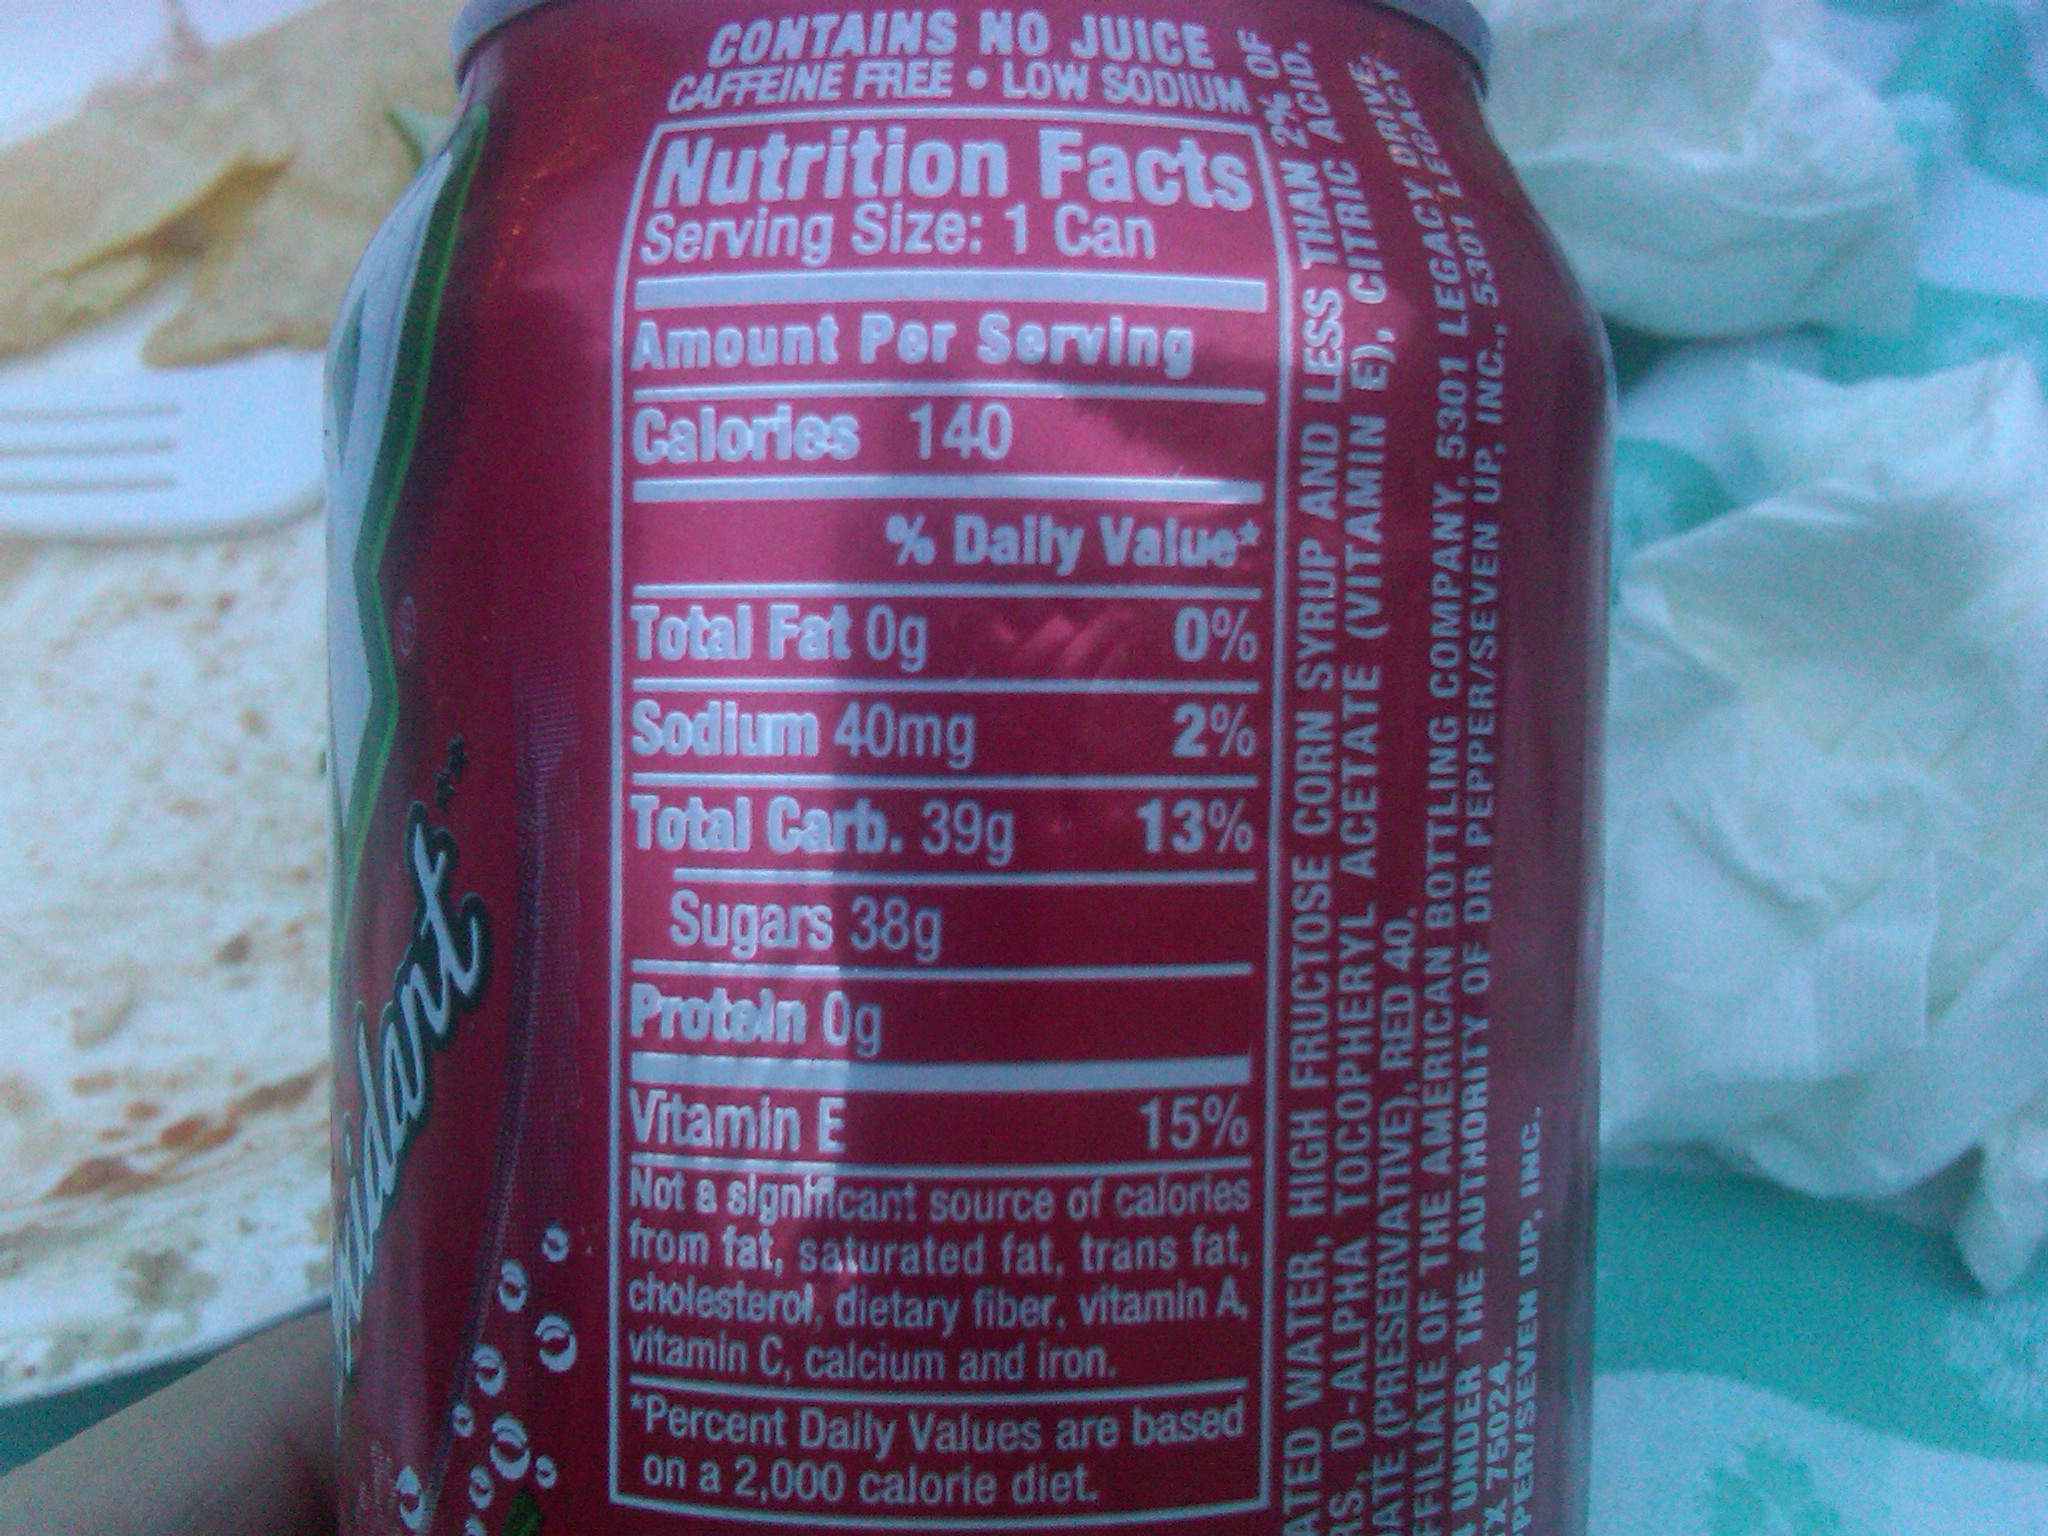 Can of Cherry 7UP (look at sugar content!)